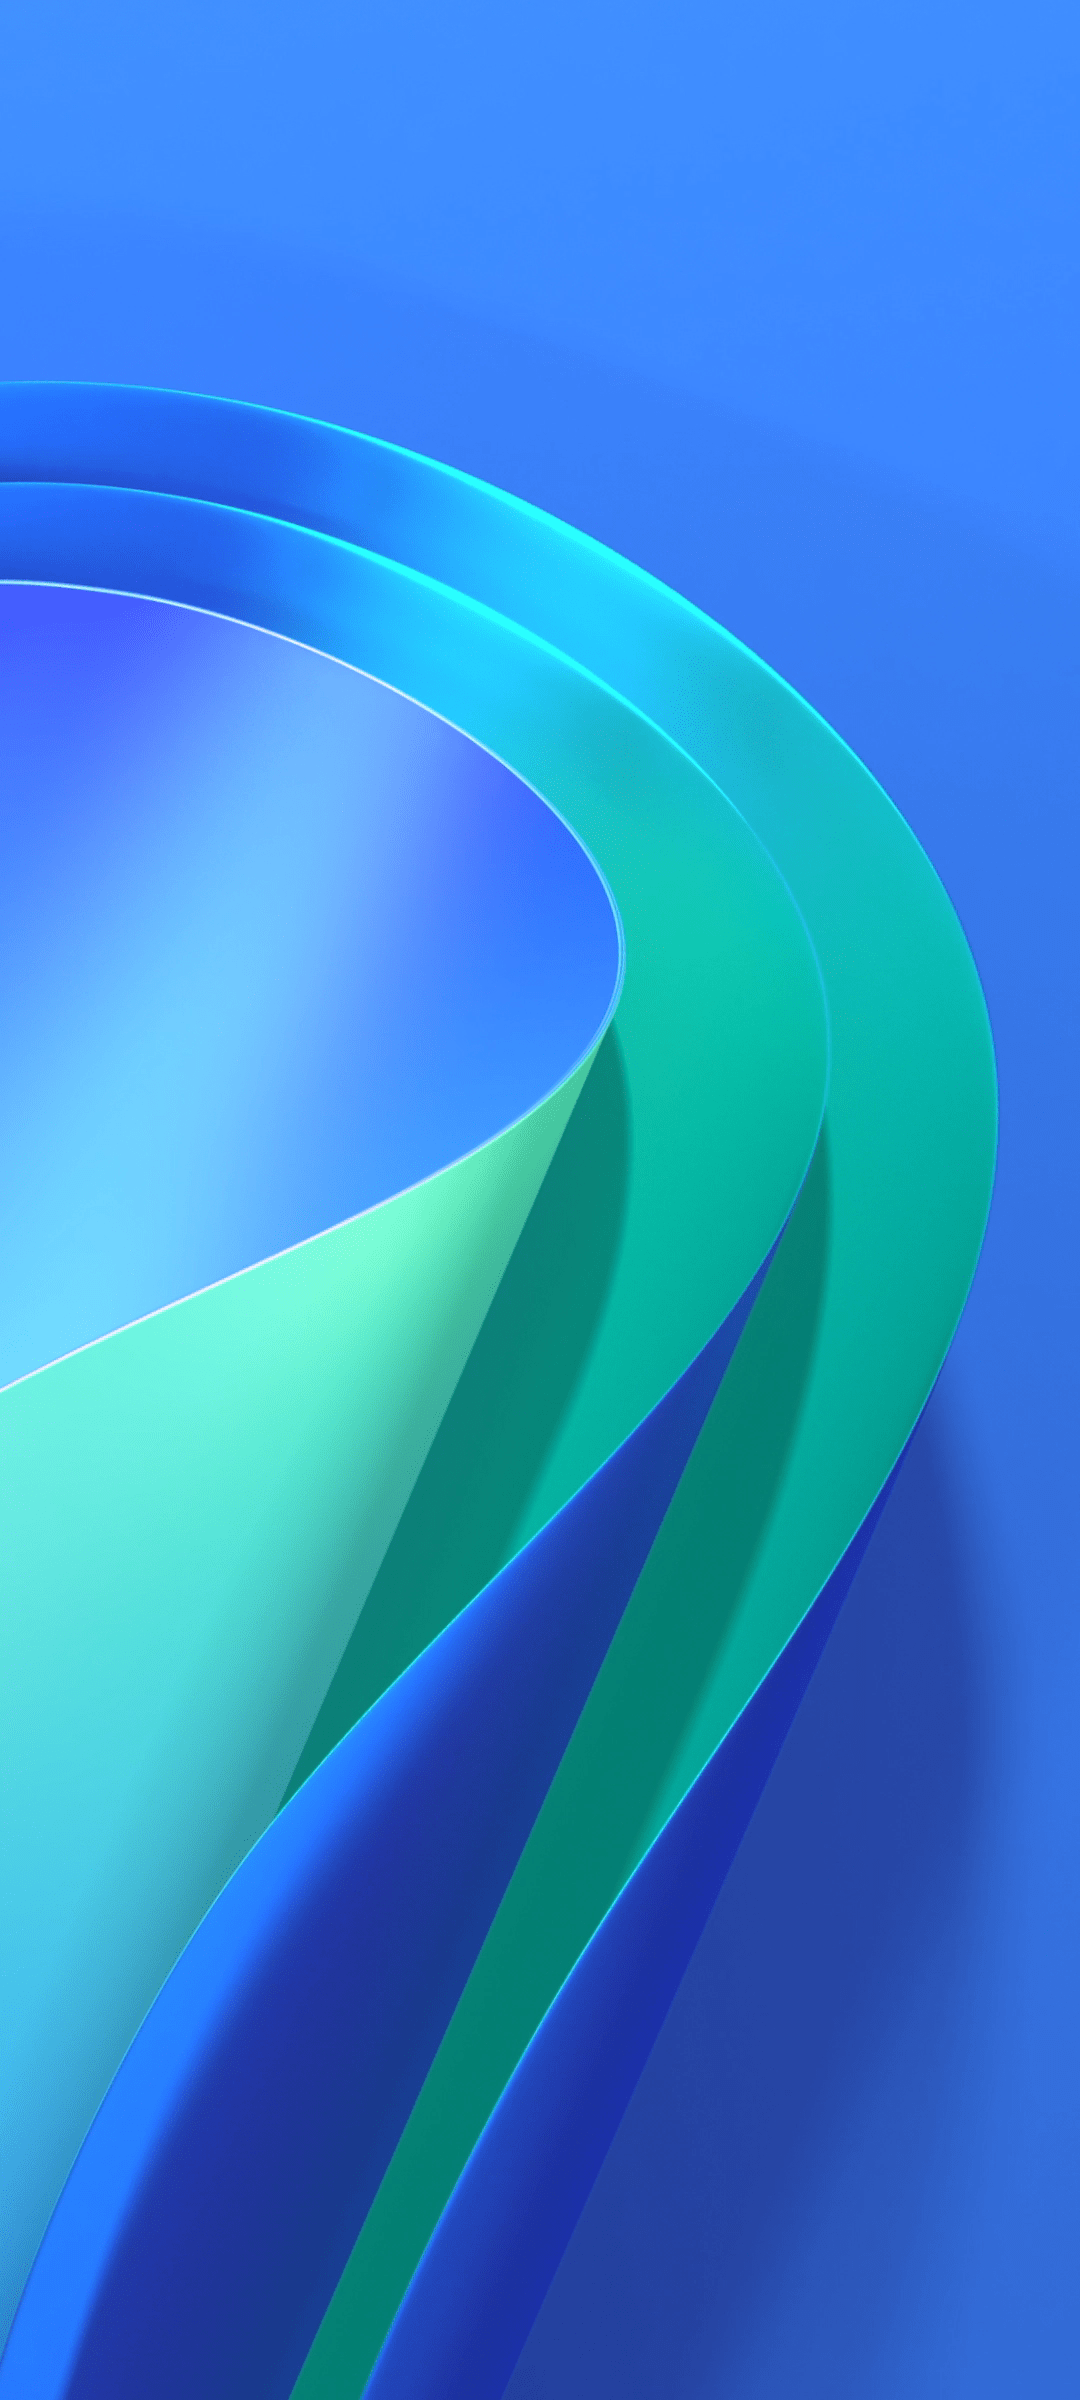 OnePlus 8T's wallpapers